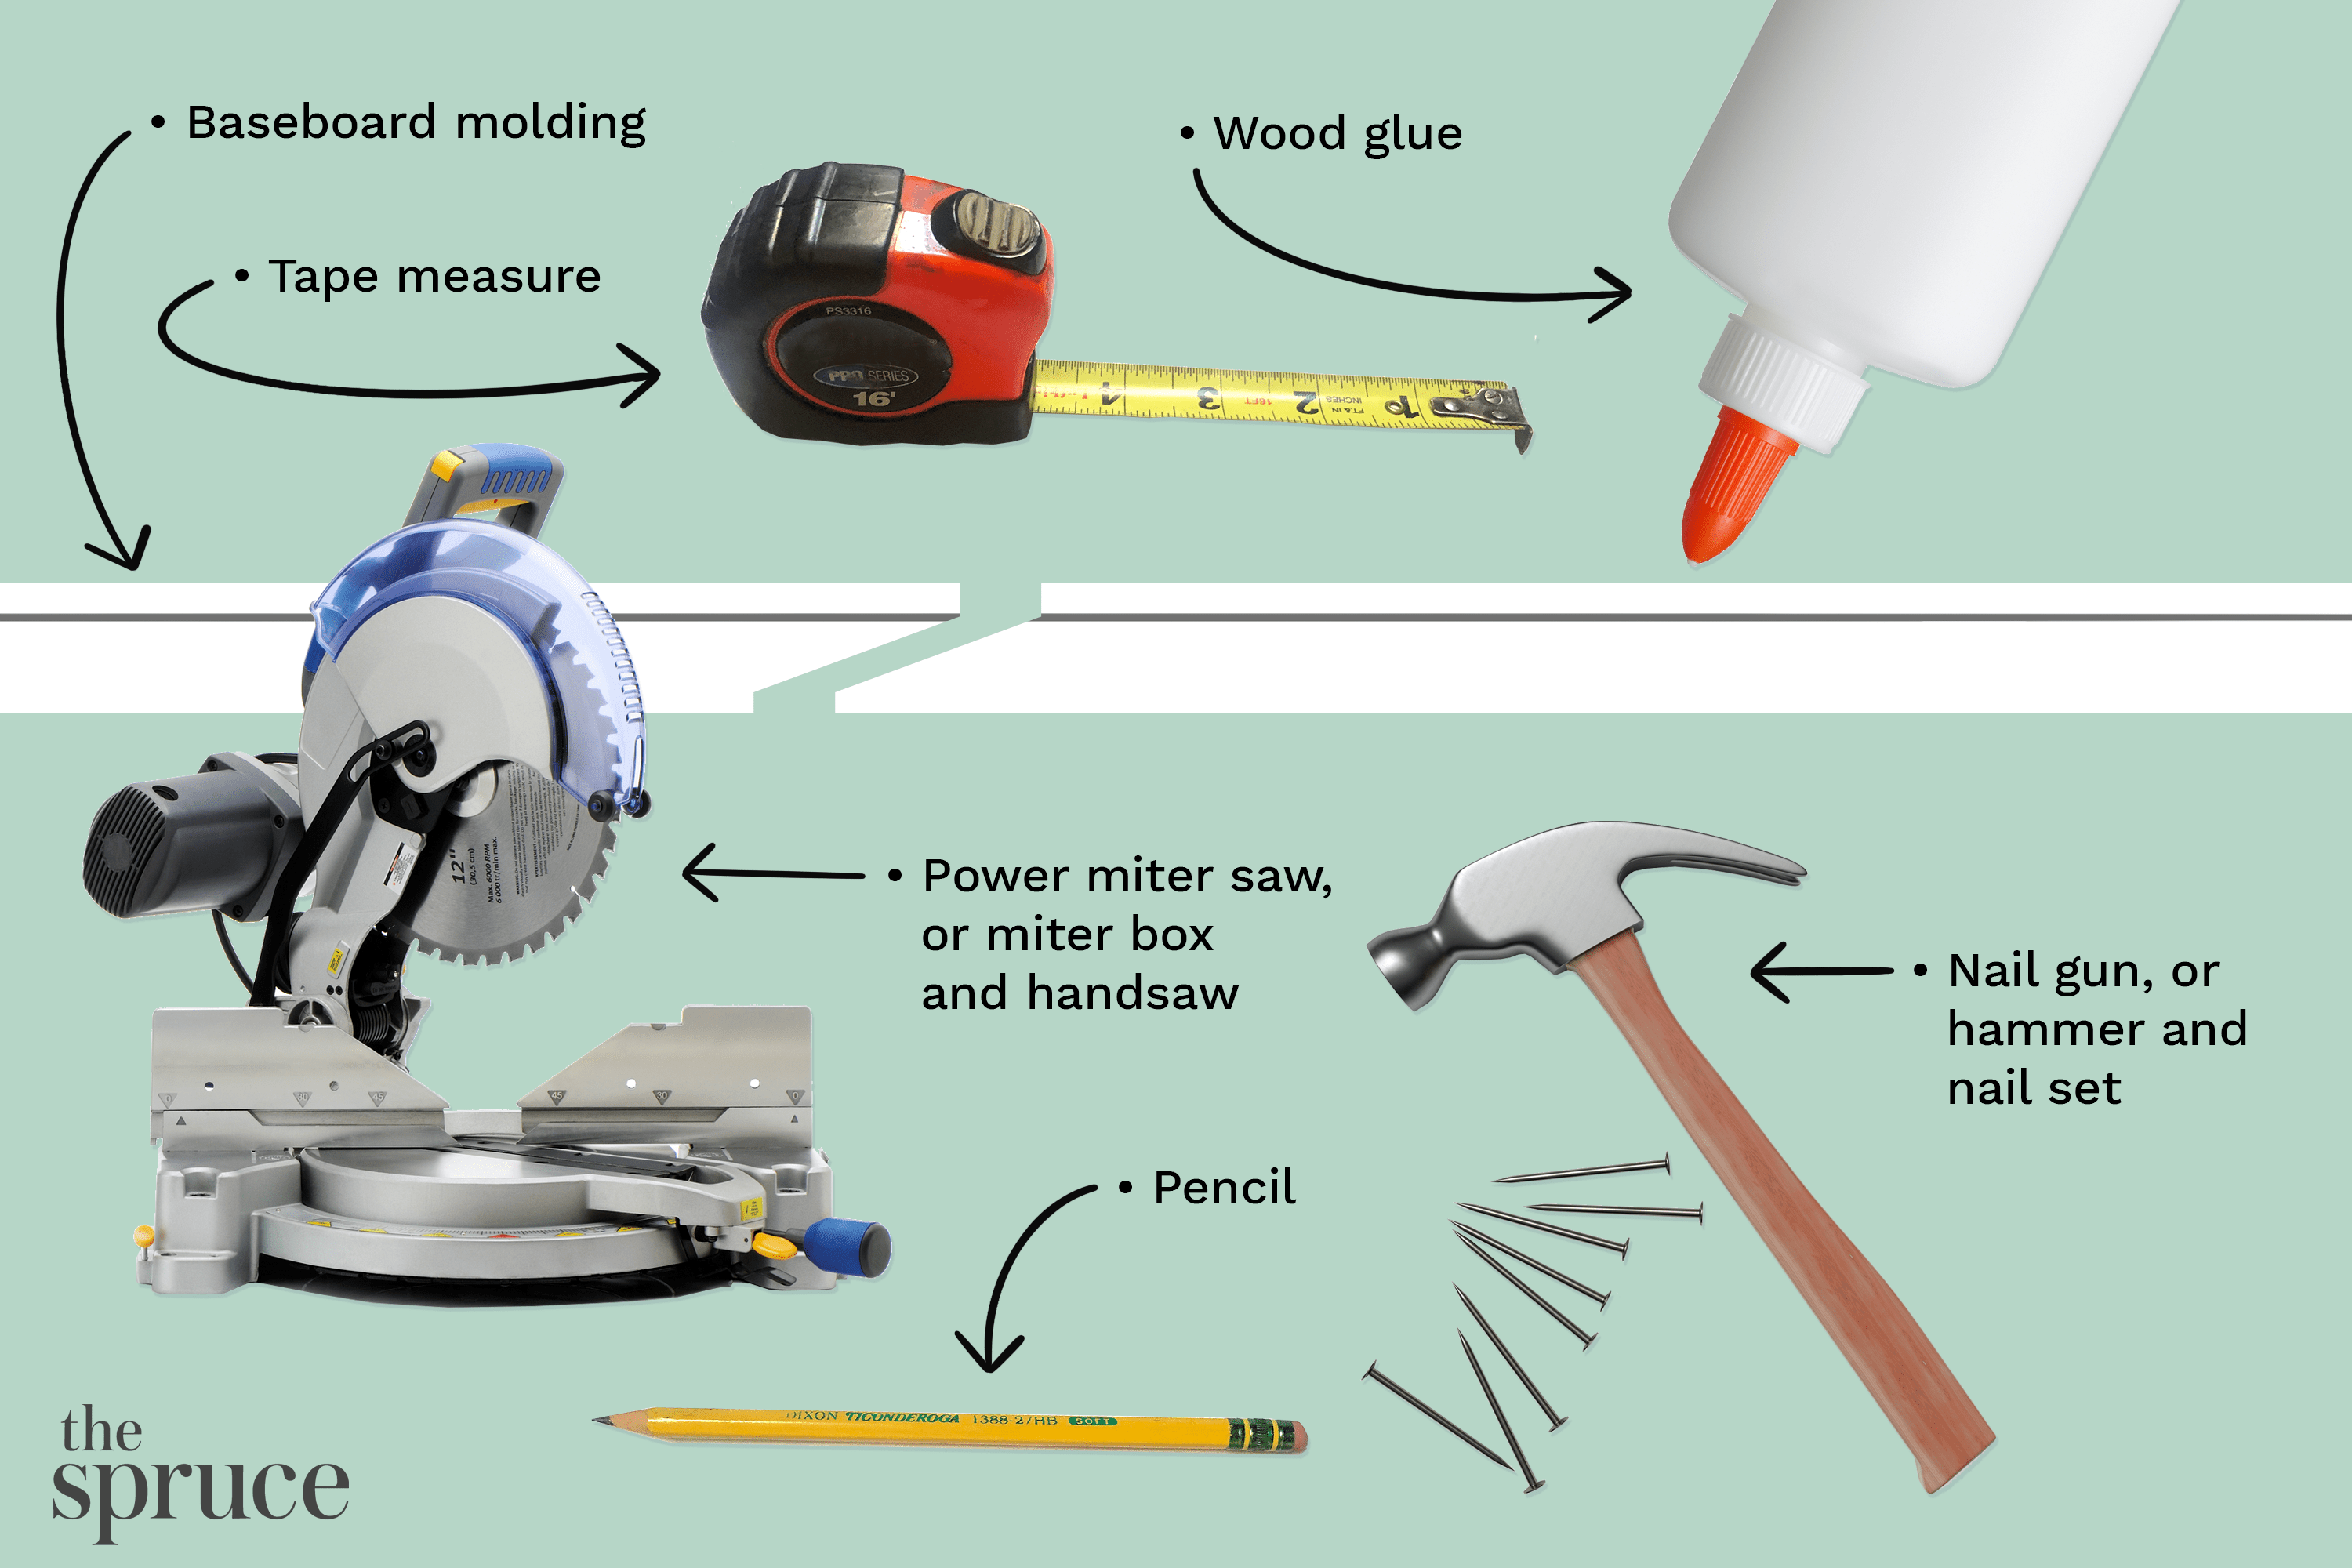 Materials and tools illustration to join baseboard moldings with scarf joints